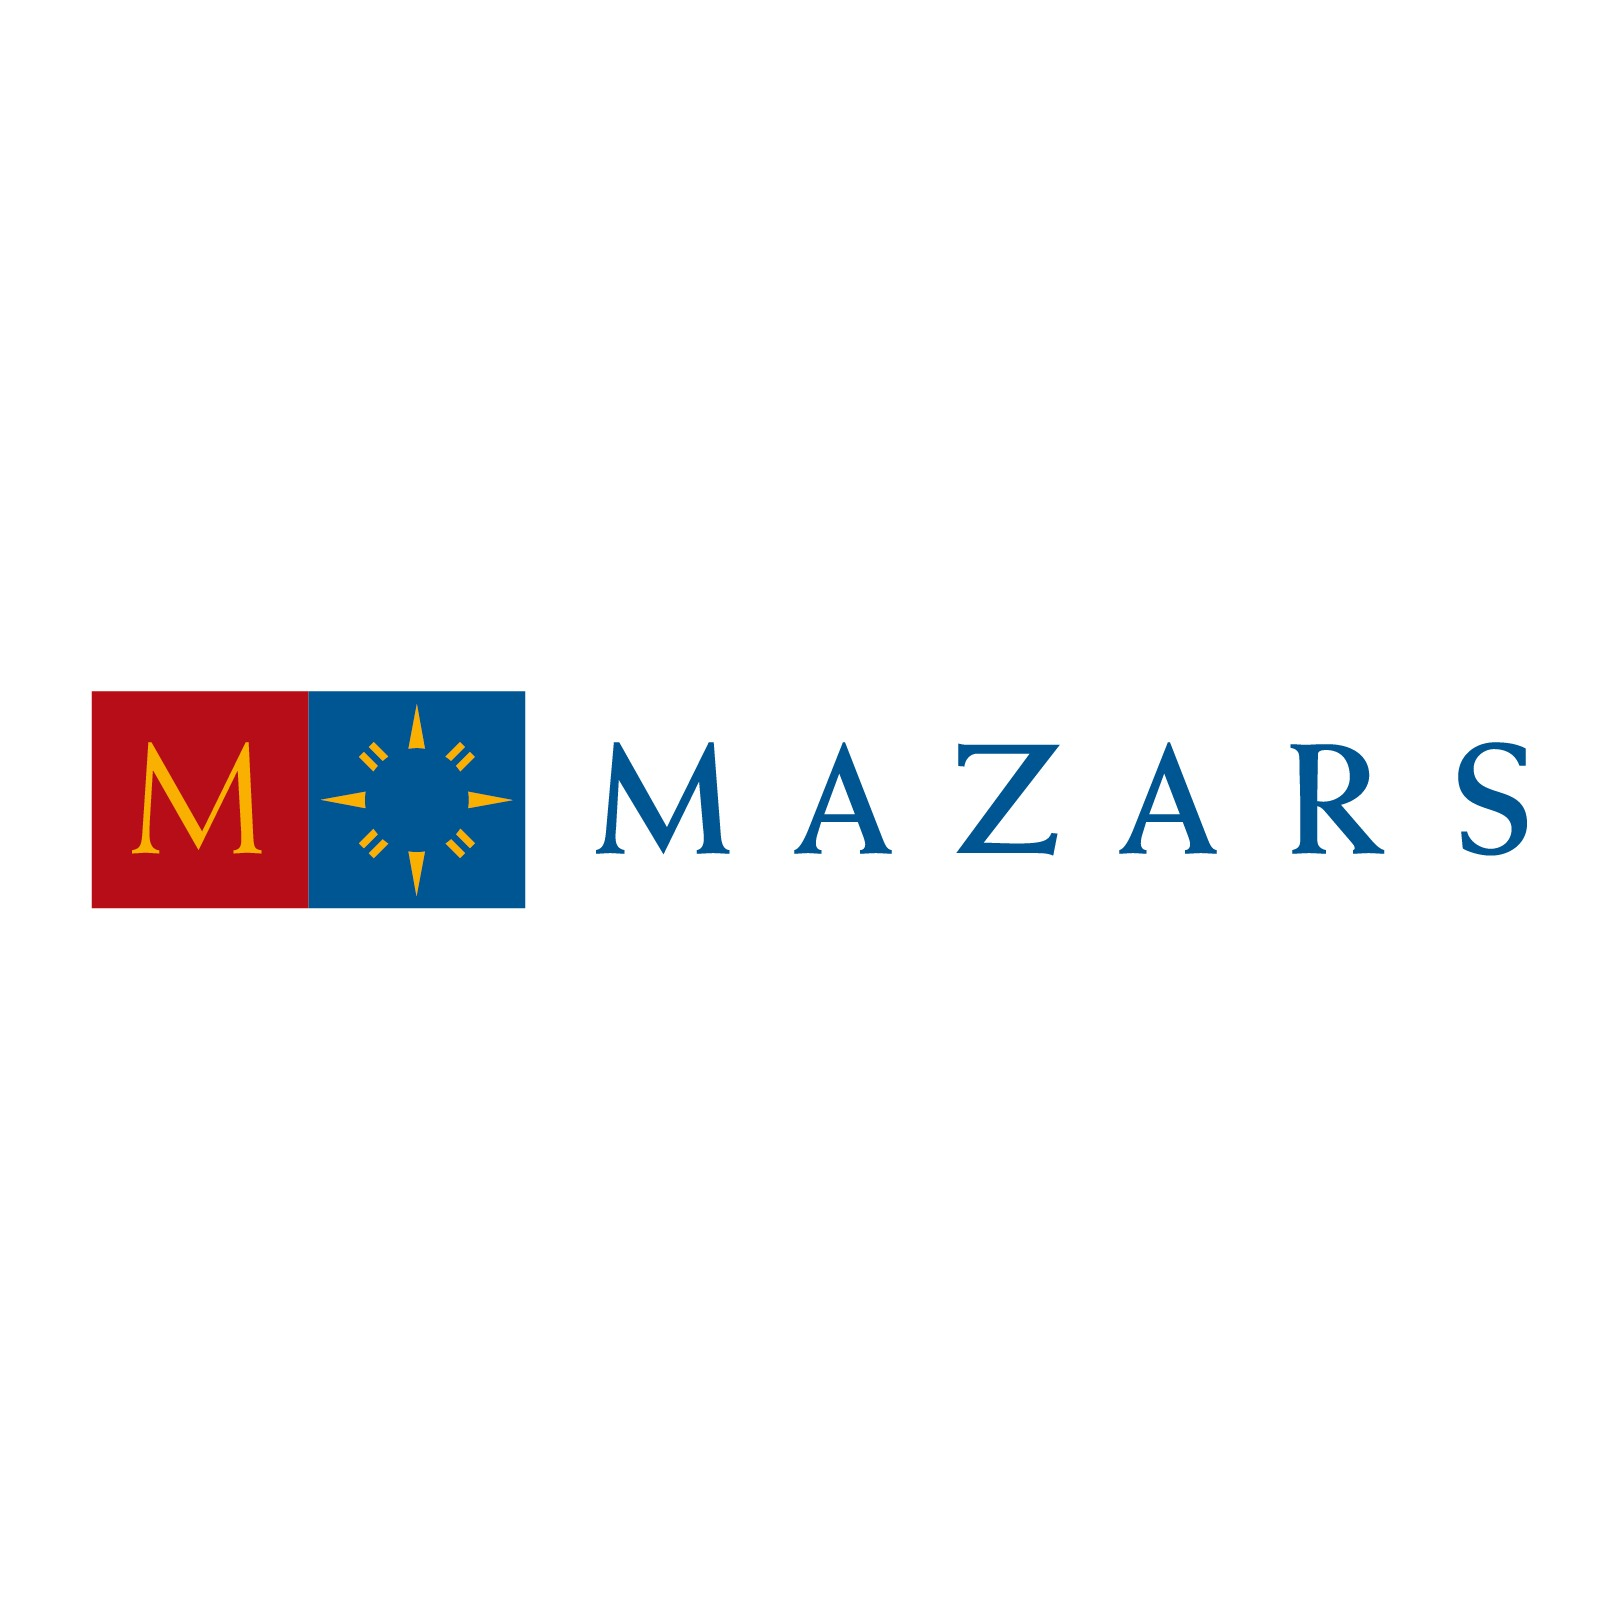 the Mazars logo.